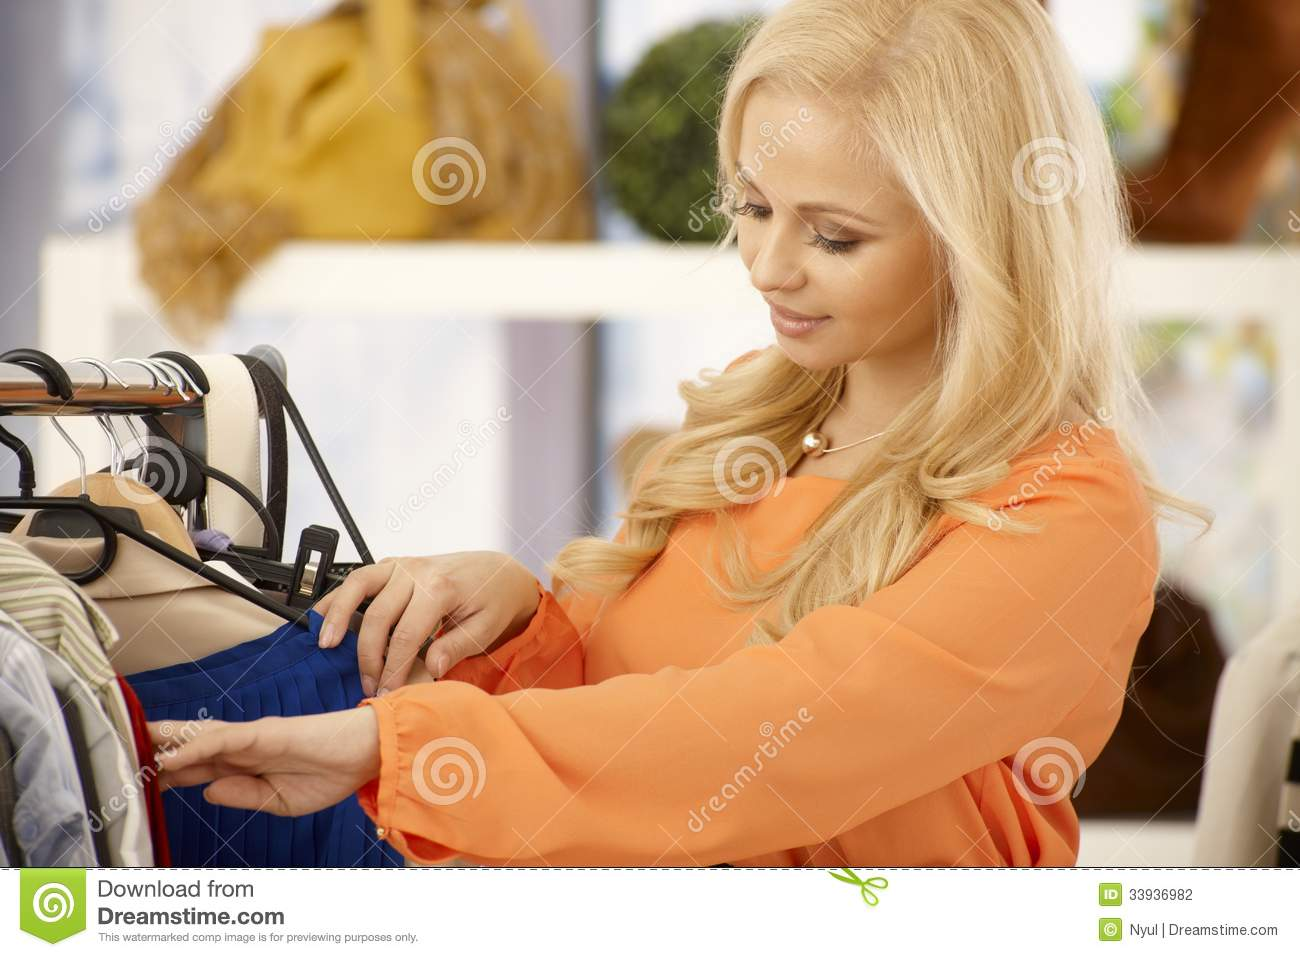 Pretty blonde woman searching among clothes at clothes store